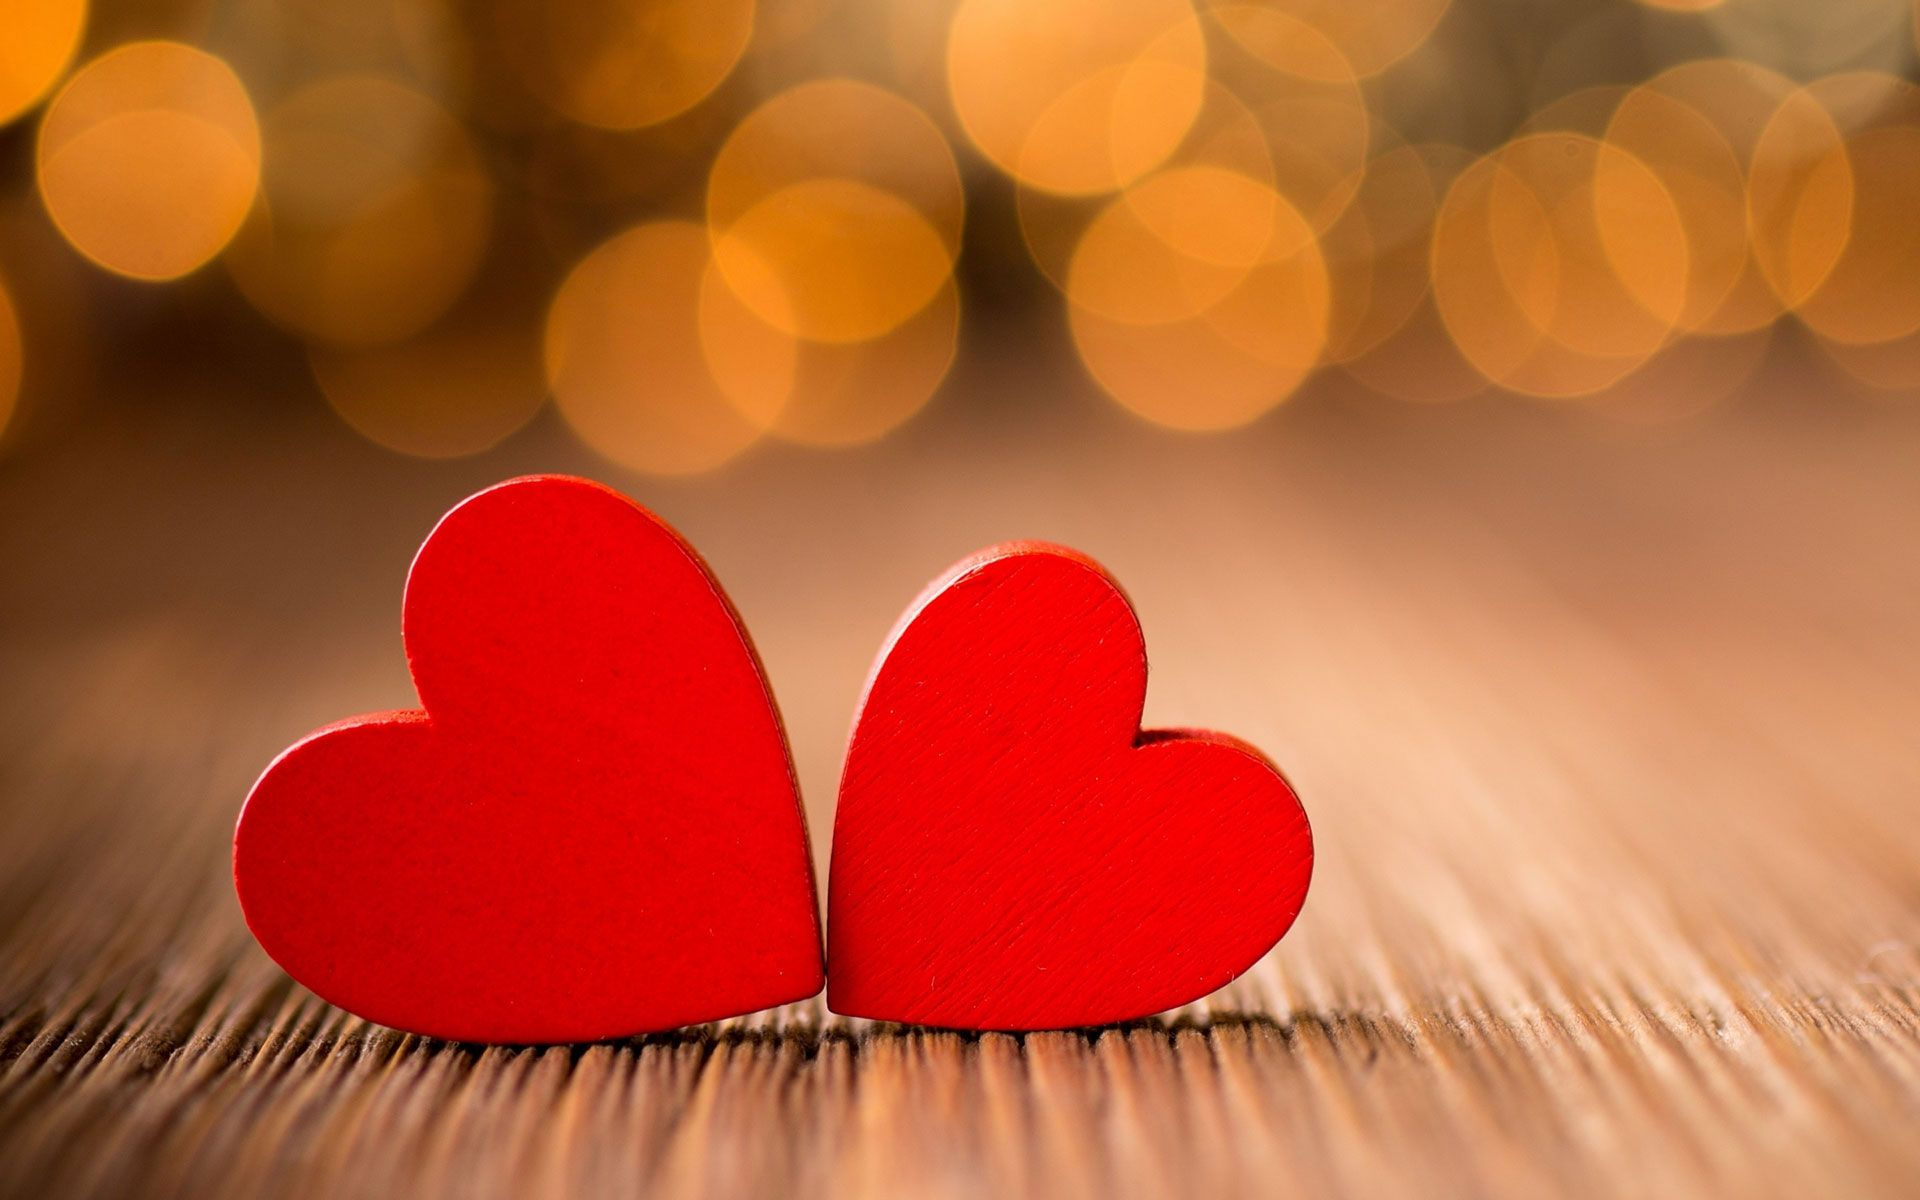 Photo Art Love Wallpapers Free Download In 2020 Cute Love Wallpapers Love Wallpaper Love Wallpaper For Mobile